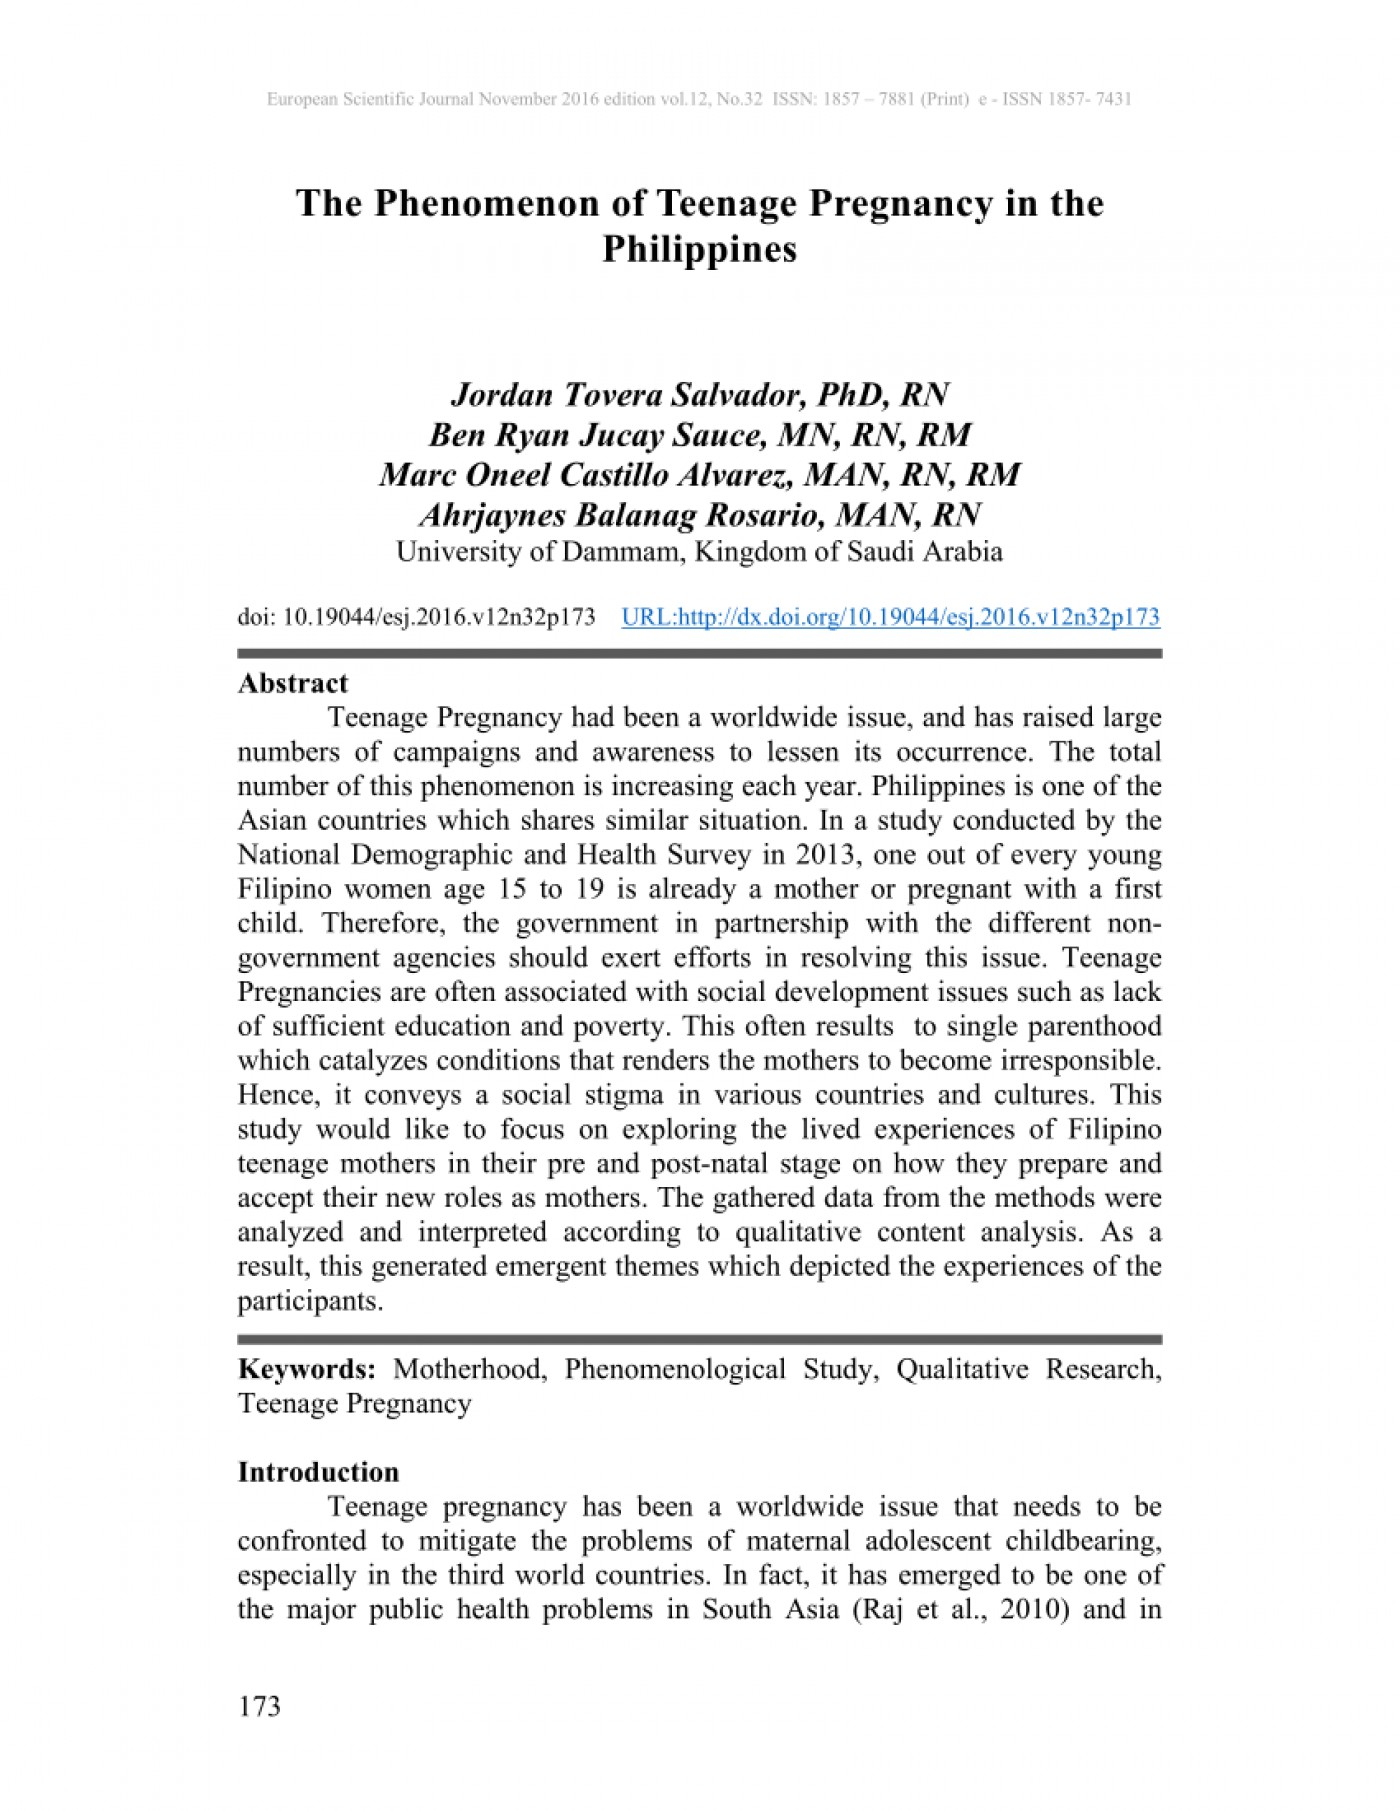 001 Introduction Of Research Paper About Teenage Pregnancy In The Philippines Wondrous A 1400